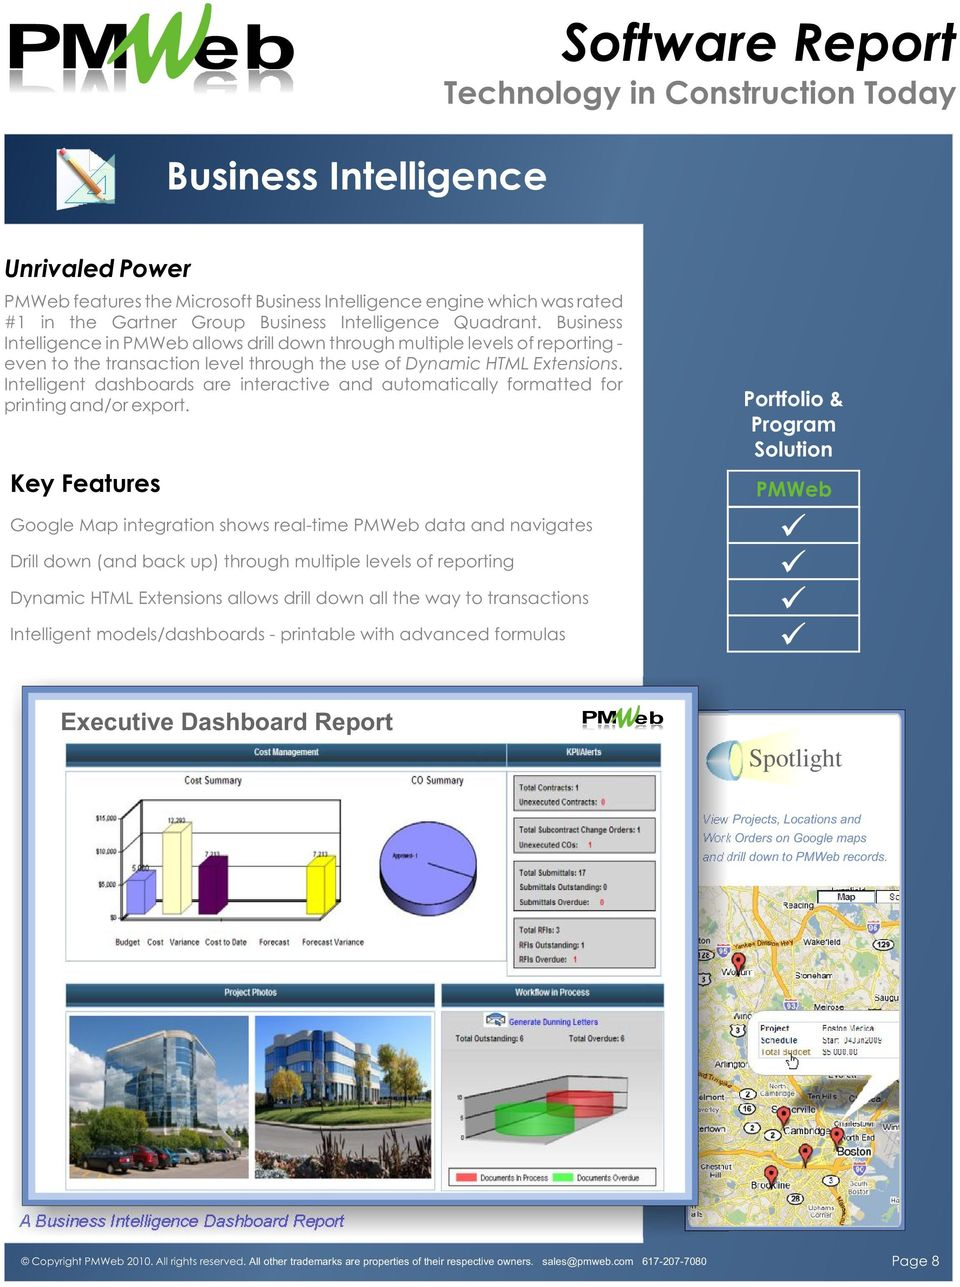 Intelligent dashboards are interactive and automatically formatted for printing and/or export.